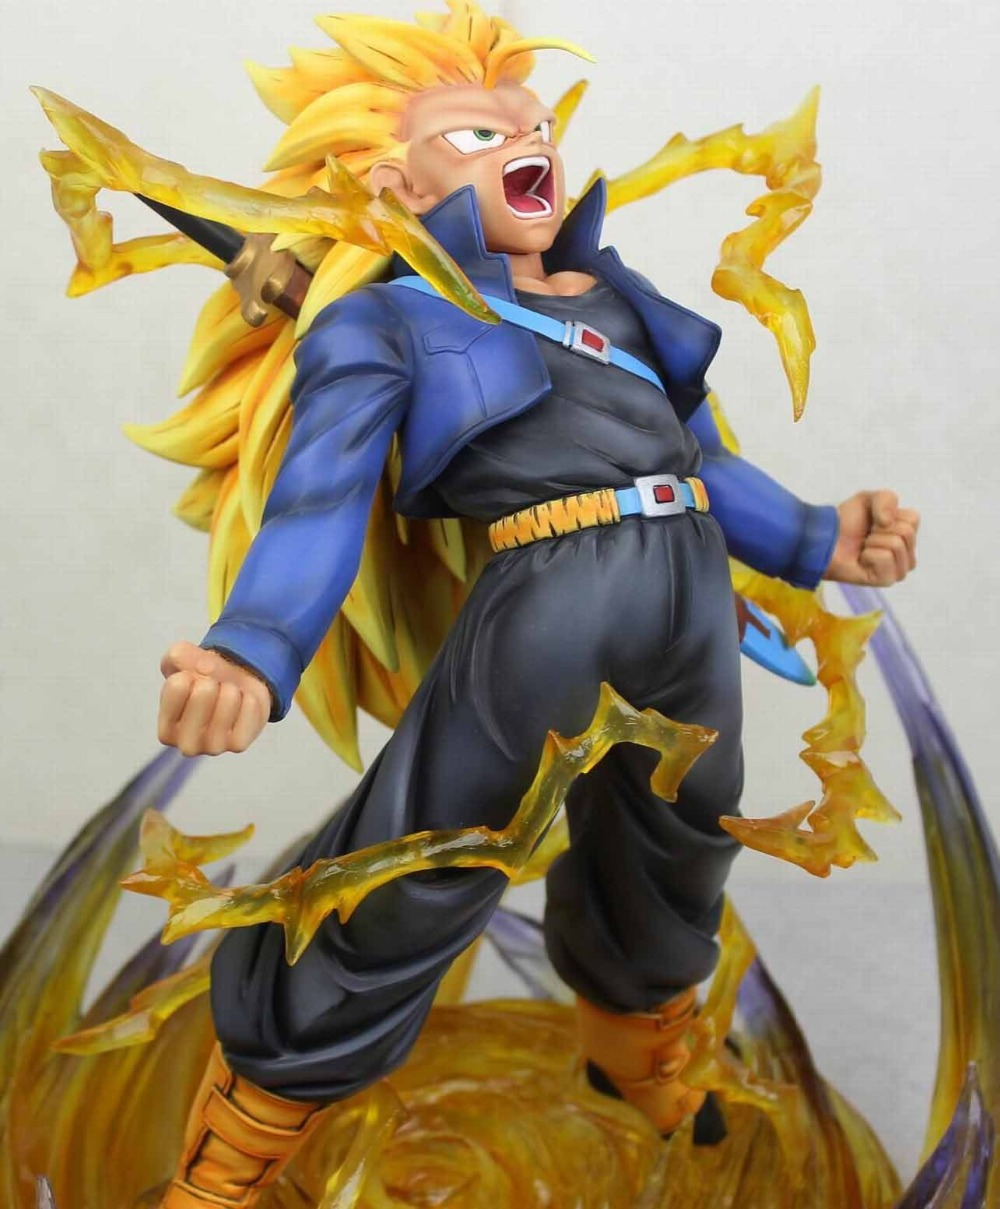 MODEL FANS Dragon Ball Z 30cm super saiyan 3 future Trunks gk resin figure toy for Collection sadat khattab usama abdul raouf and tsutomu kodaki bio ethanol for future from woody biomass